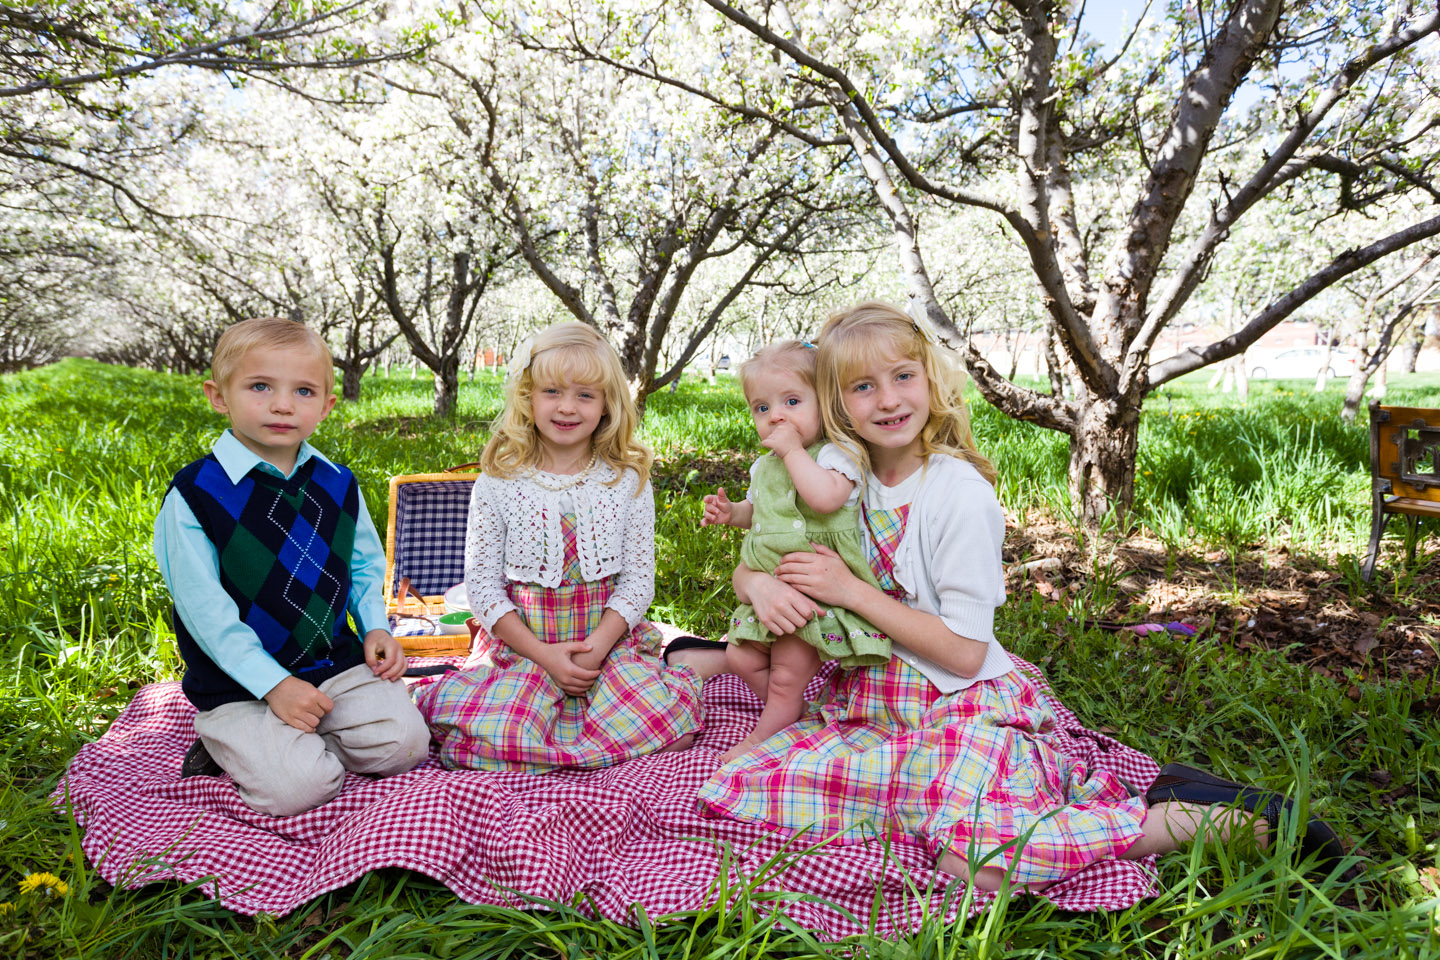 Sitting for a picnic in the orchard